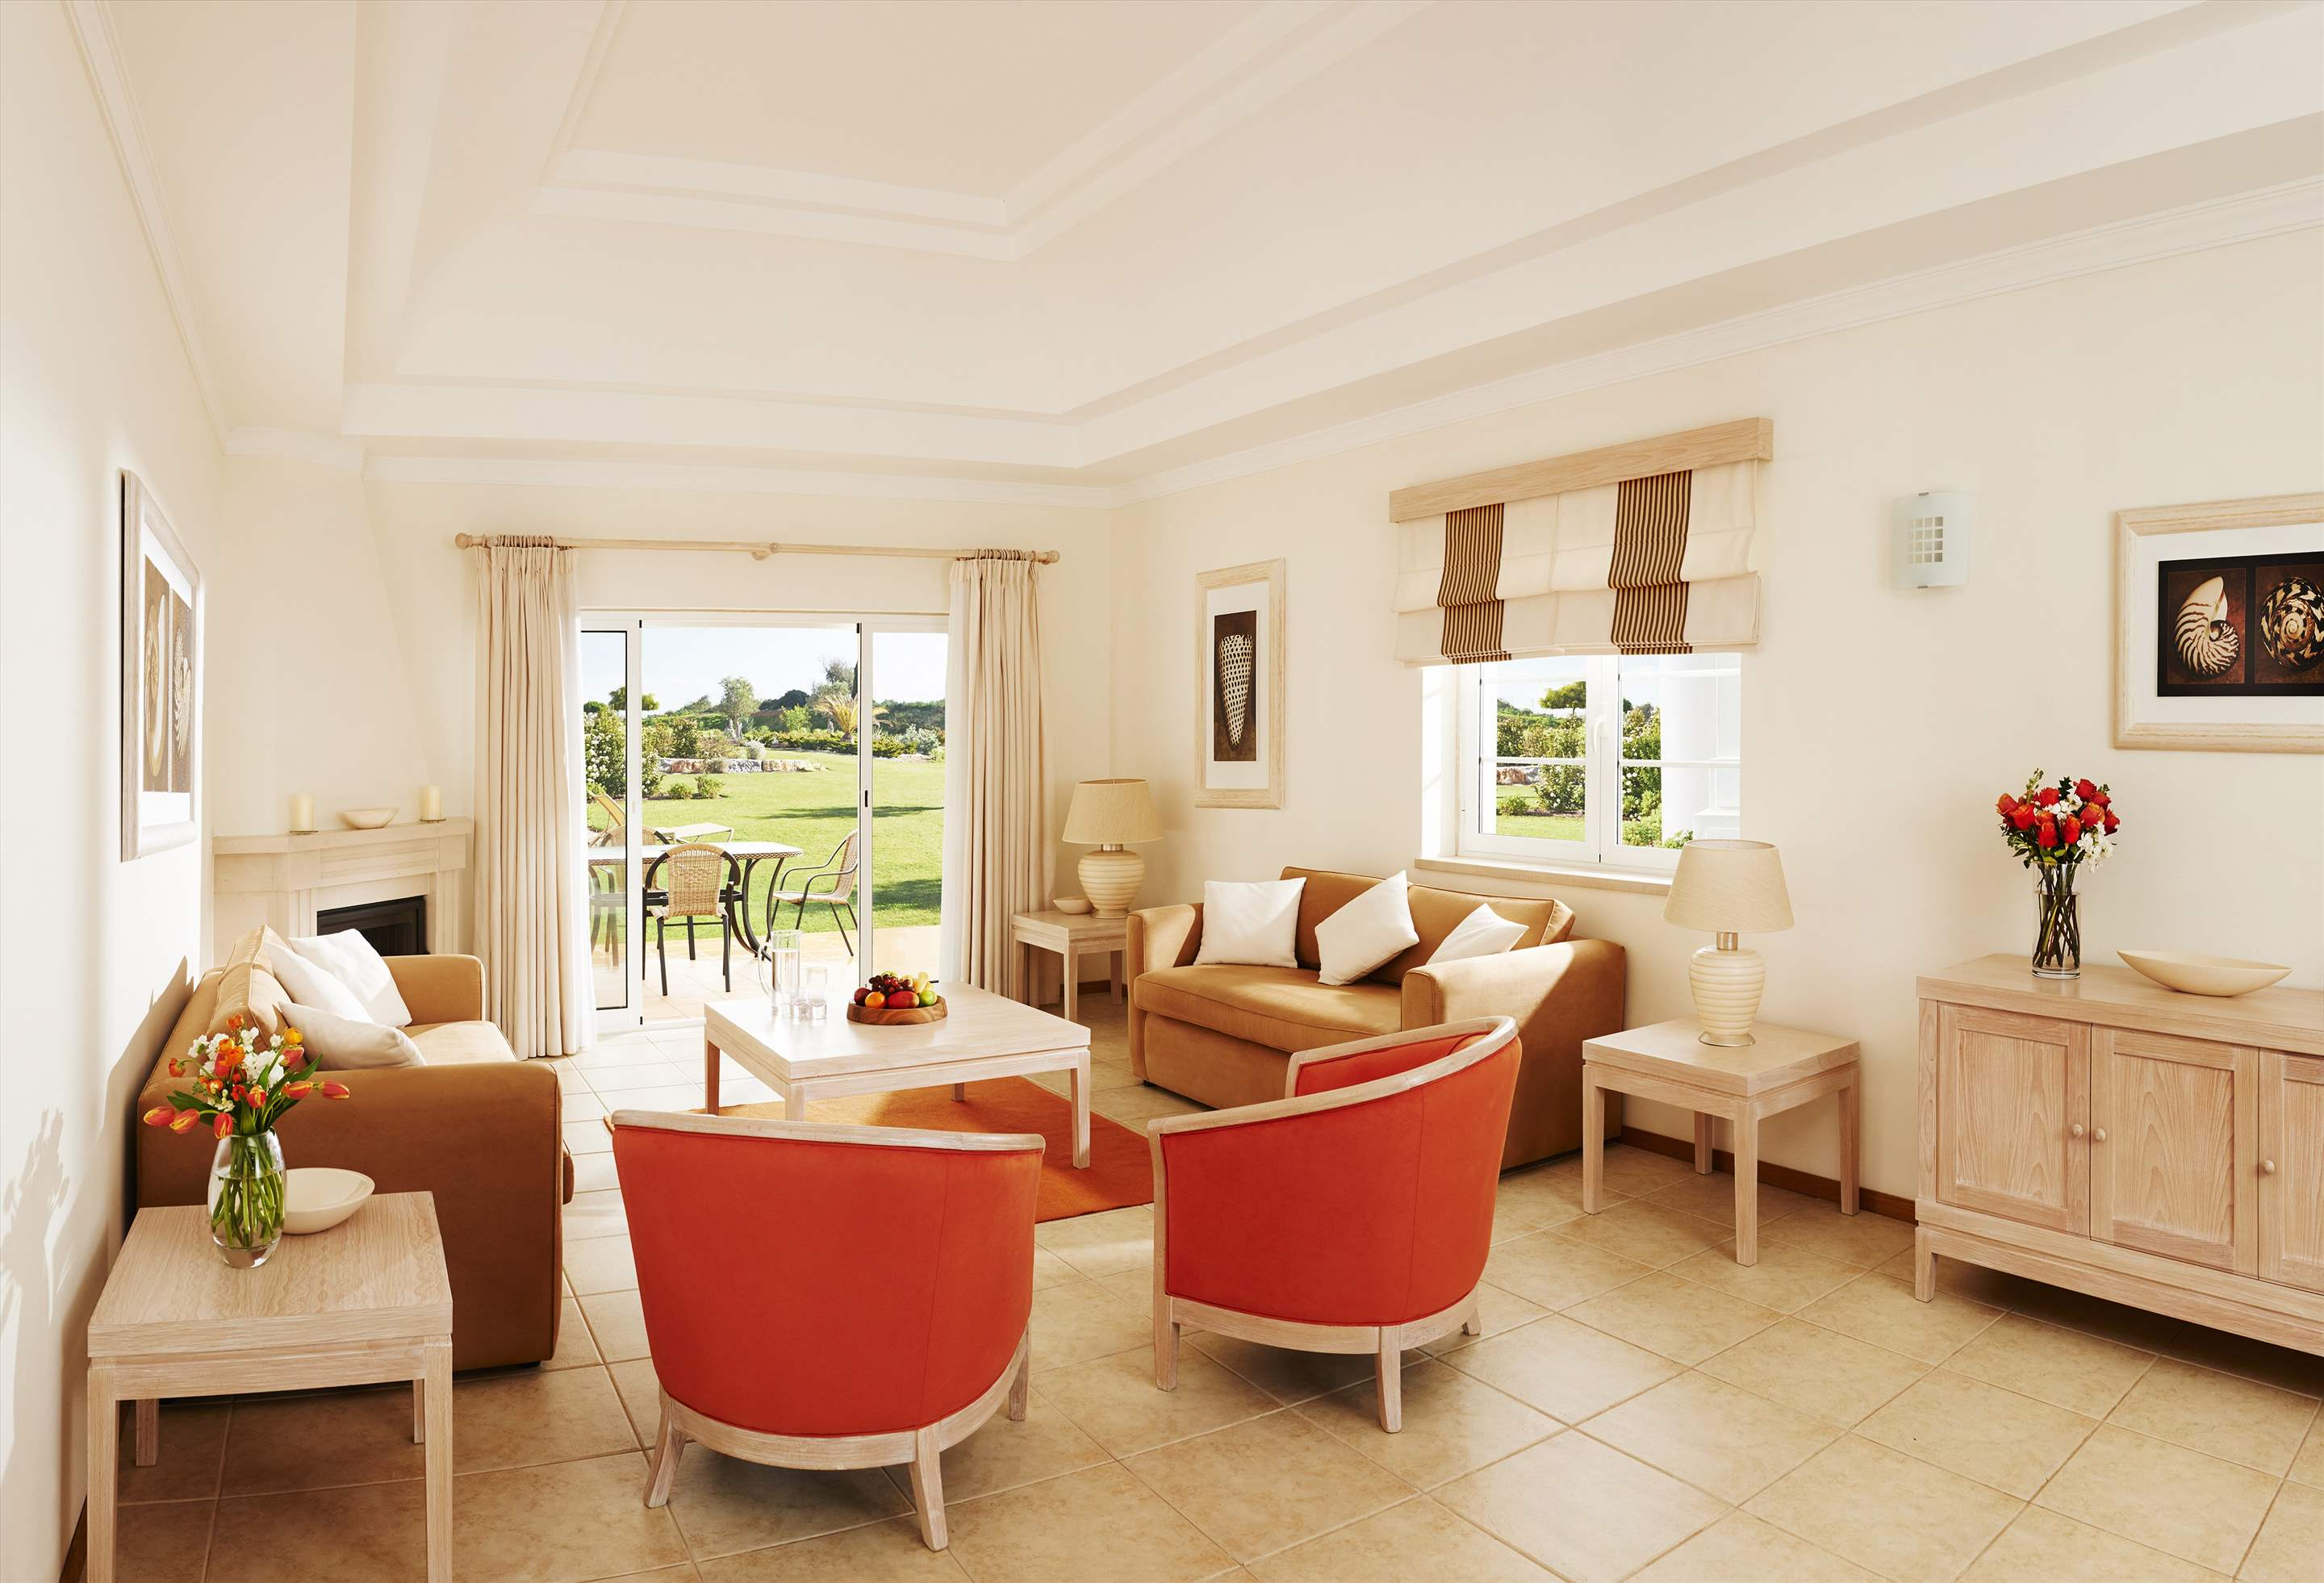 Vale d'Oliveiras 2 Bed Suite Garden View , Bed & Breakfast, 2 bedroom apartment in Vale d'Oliveiras Resort & Spa, Algarve Photo #2